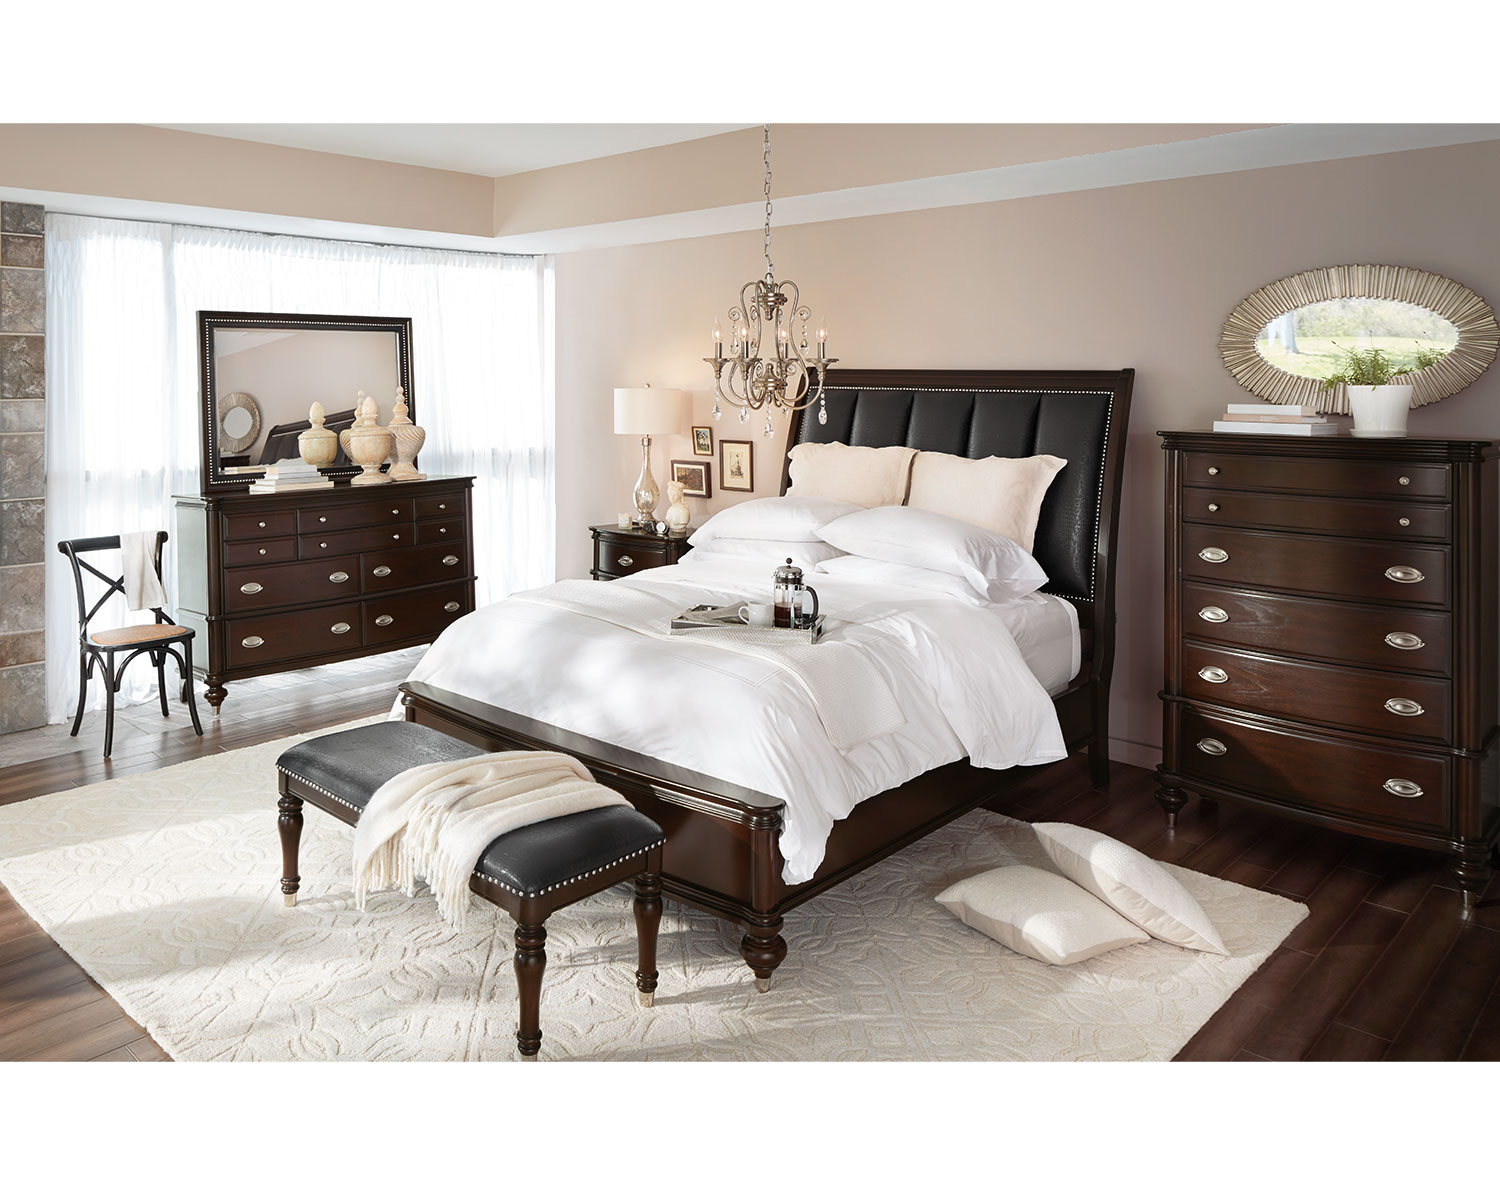 The Esquire Bedroom Collection